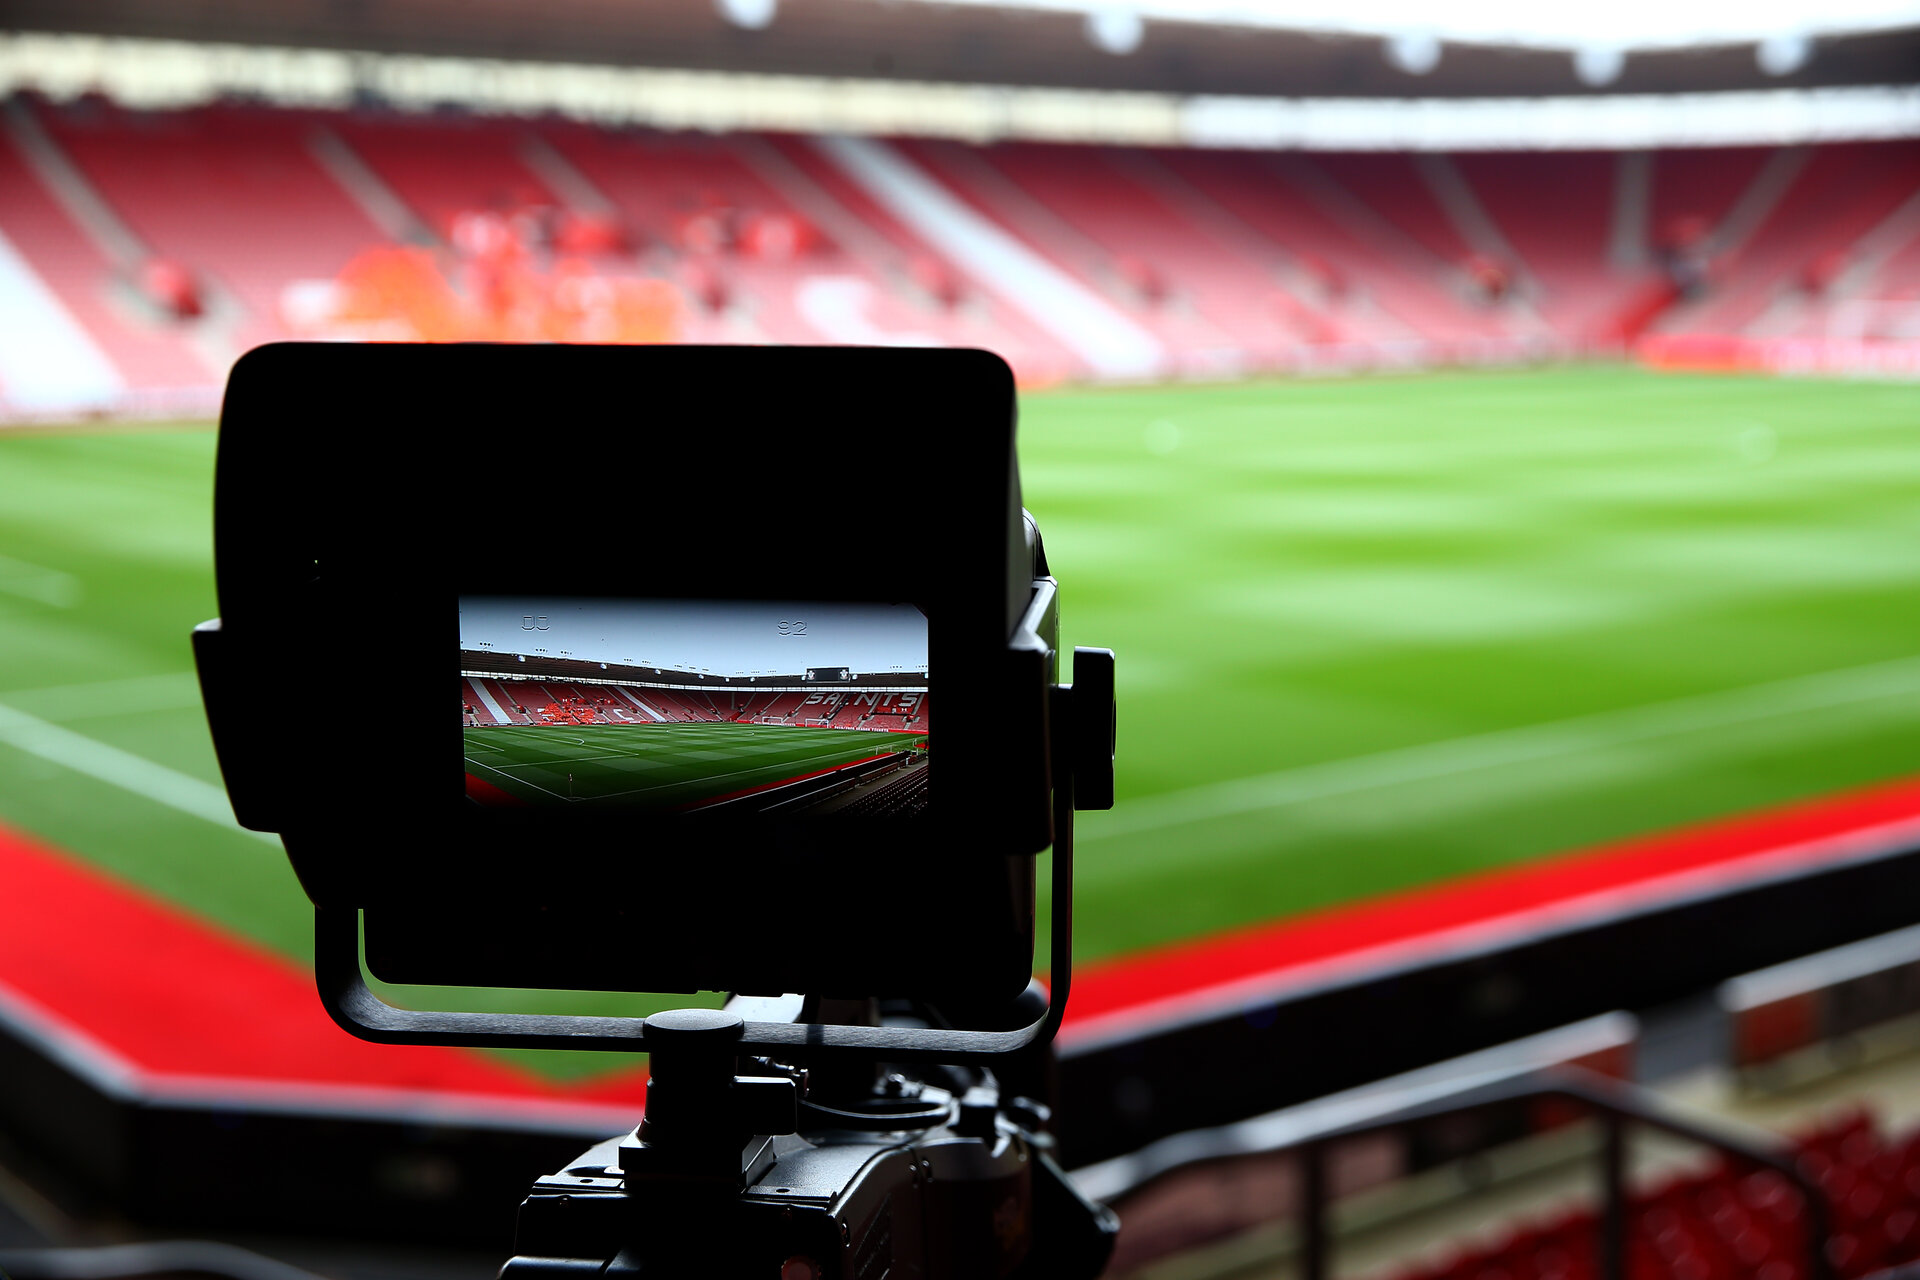 SOUTHAMPTON, ENGLAND - APRIL 13: General view through the lens of a tv camera ahead of the Premier League match between Southampton FC and Wolverhampton Wanderers at St Mary's Stadium on April 13, 2019 in Southampton, United Kingdom. (Photo by Matt Watson/Southampton FC via Getty Images)